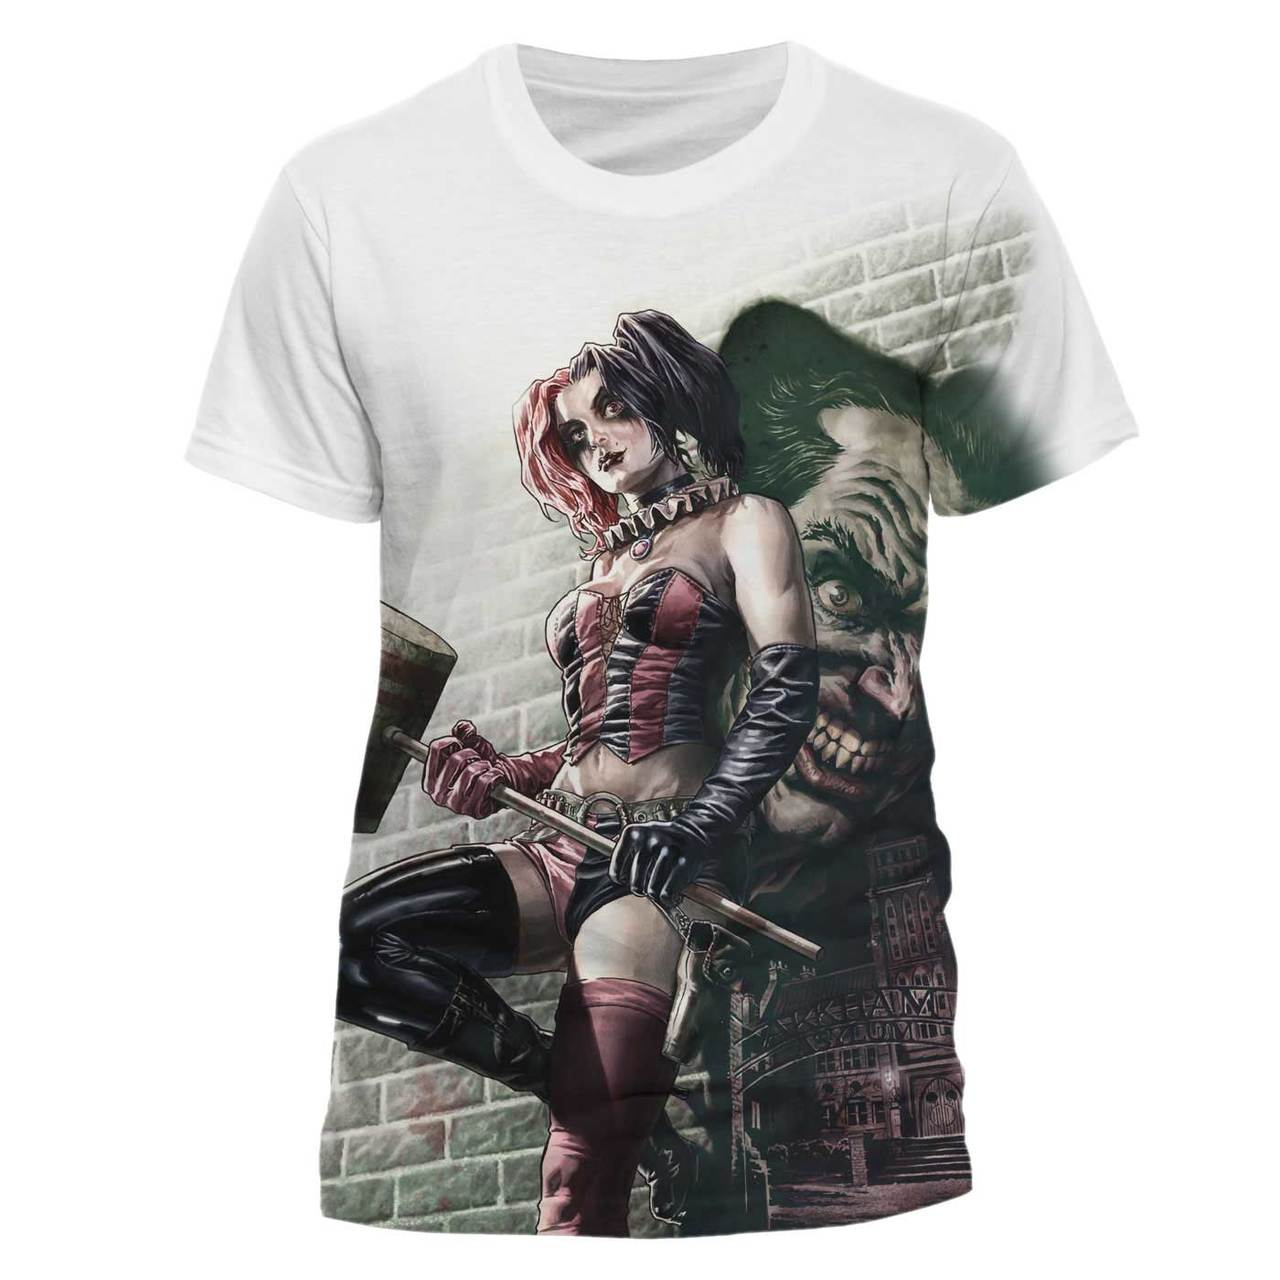 UNISEX or LADIES Official SUICIDE SQUAD Harley Quinn T-Shirt